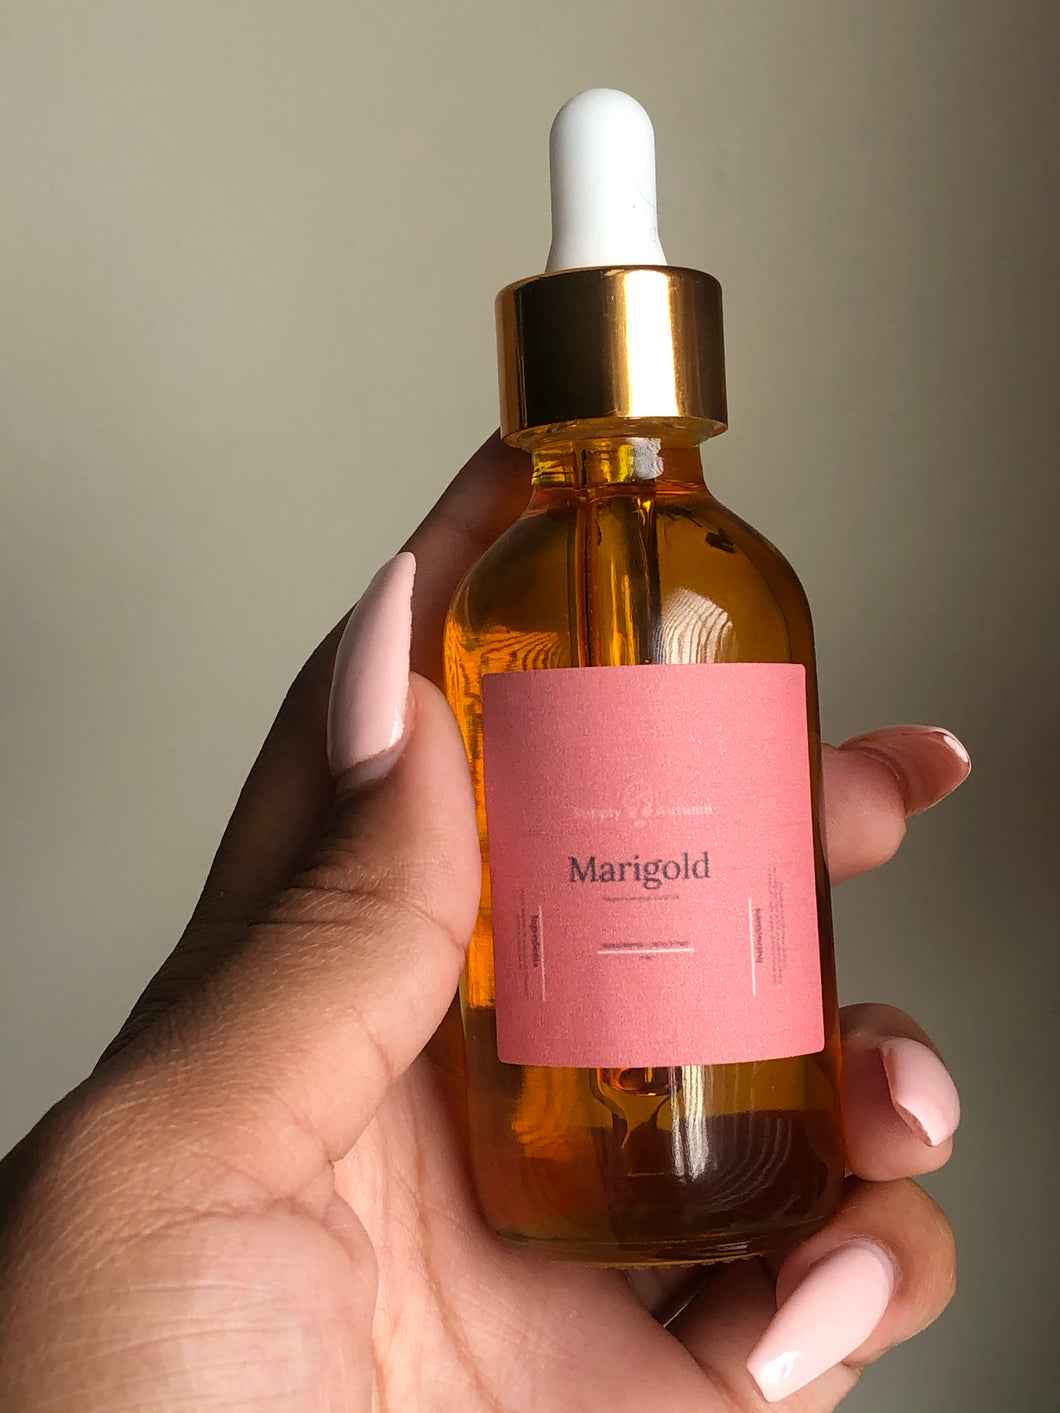 Marigold (Limited Edition)